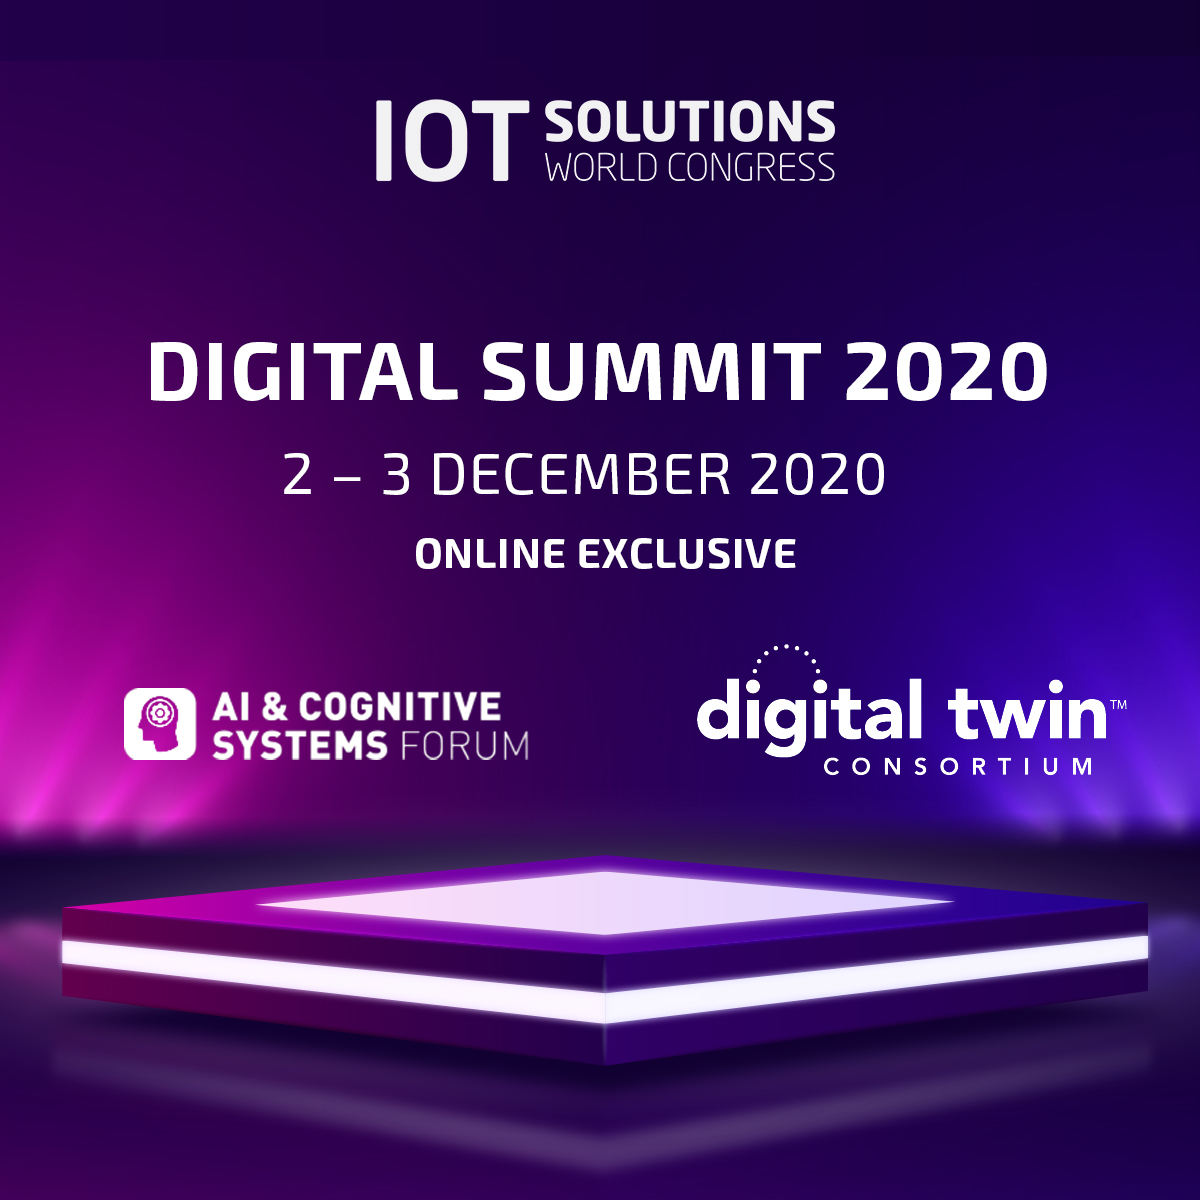 IOT Solutions World Congress Digital Summit